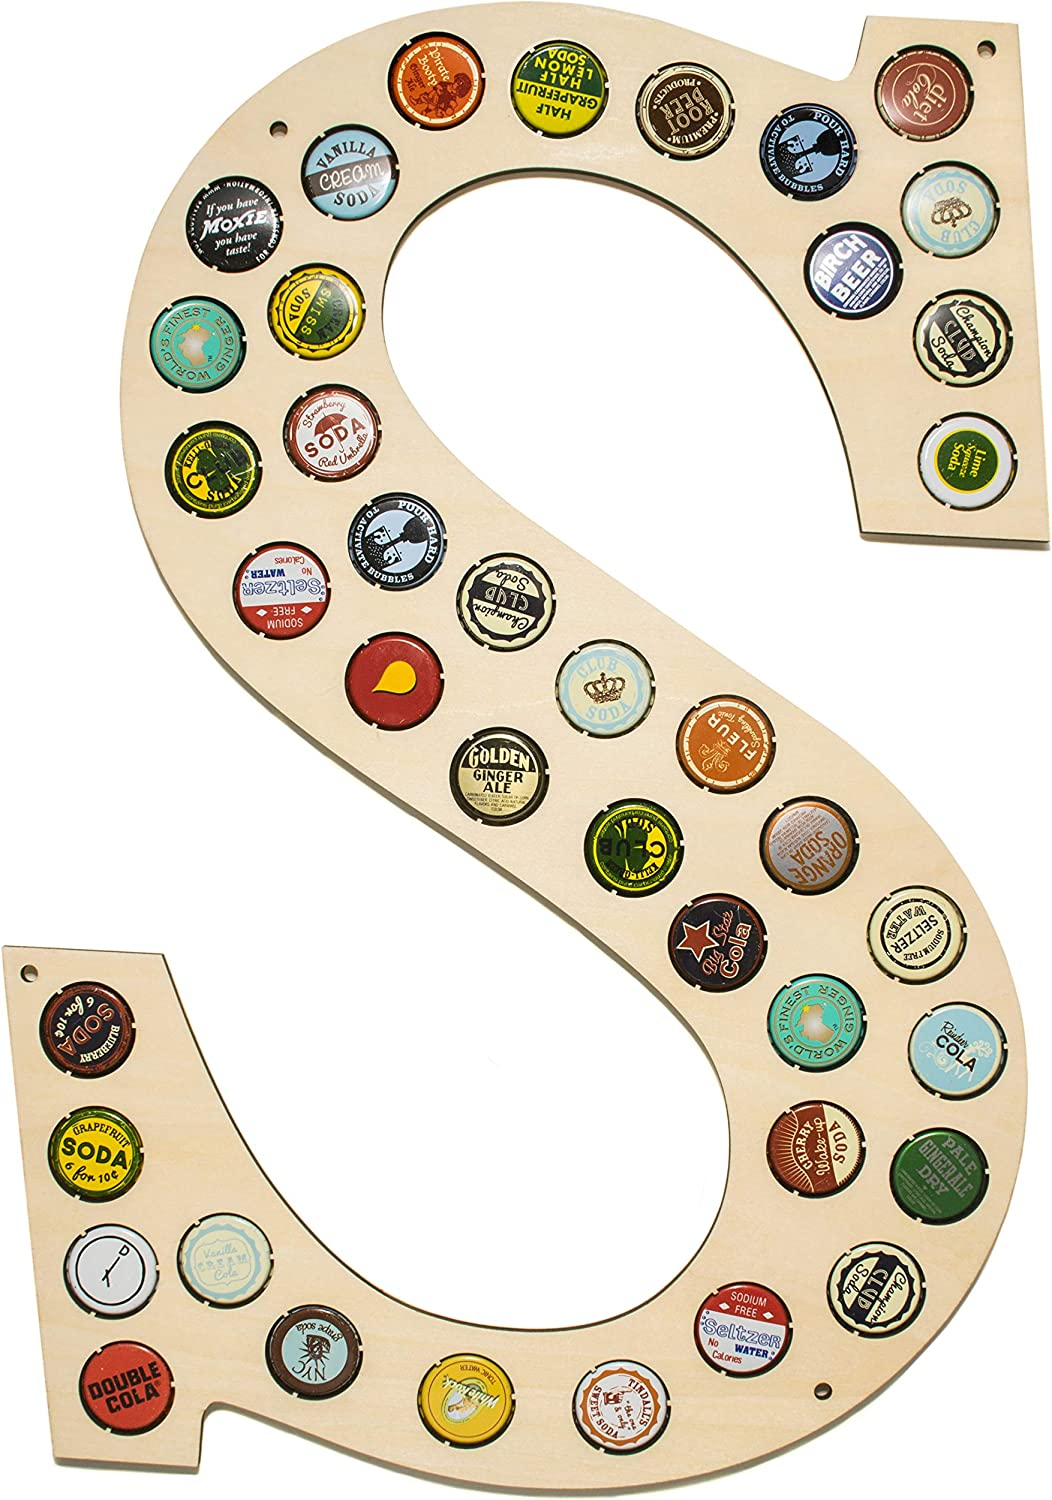 CAPLORD Beer Bottle Caps Holder Wall Decor Monogram Letter - Craft Beer Gift Ideas for Men, Housewarming Hostess Gifts for New Home Decor, Man Cave House Warming Presents Decorations (Letter S)